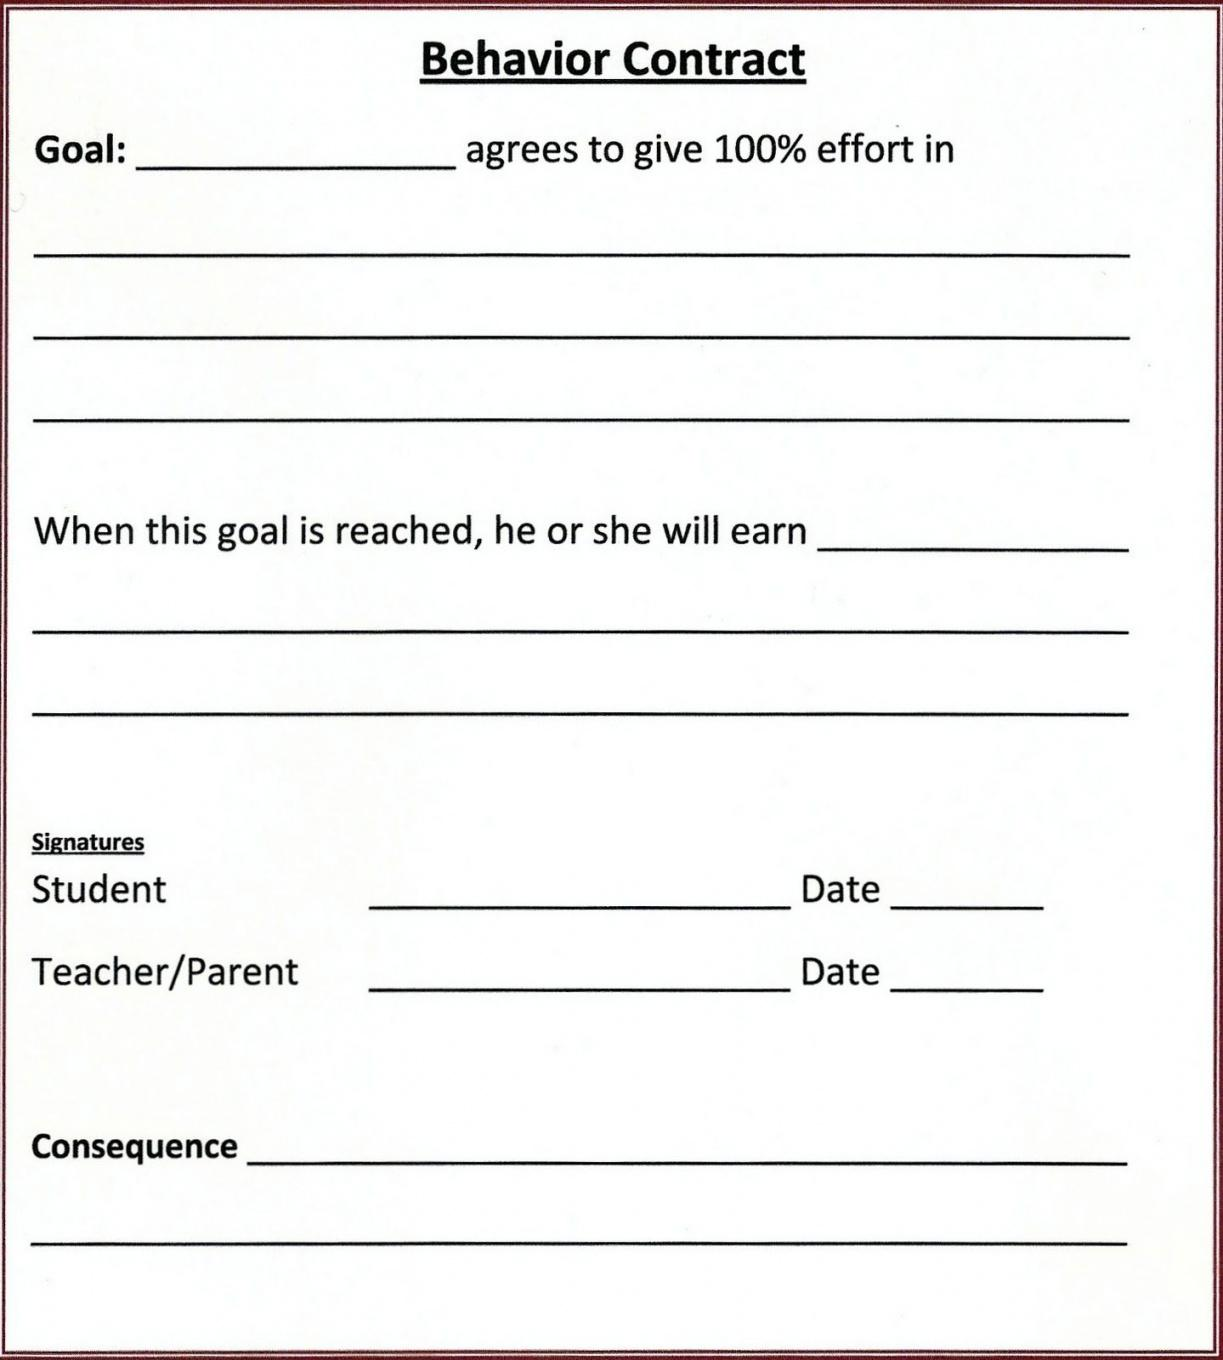 6 steps to creating behavior contracts for challenging students student behavior contract template